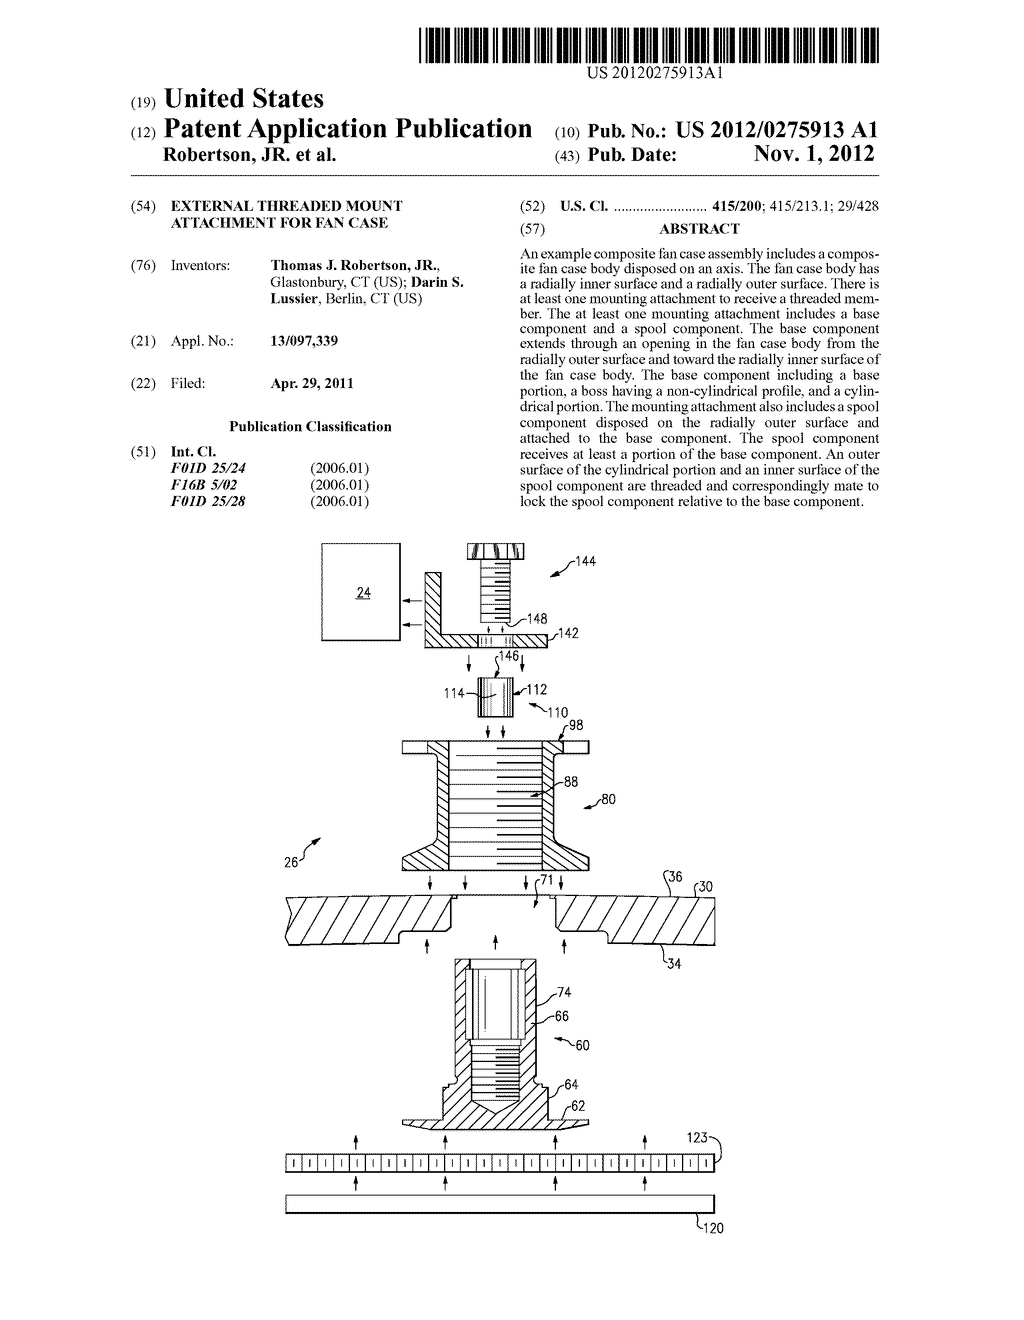 EXTERNAL THREADED MOUNT ATTACHMENT FOR FAN CASE - diagram, schematic, and image 01